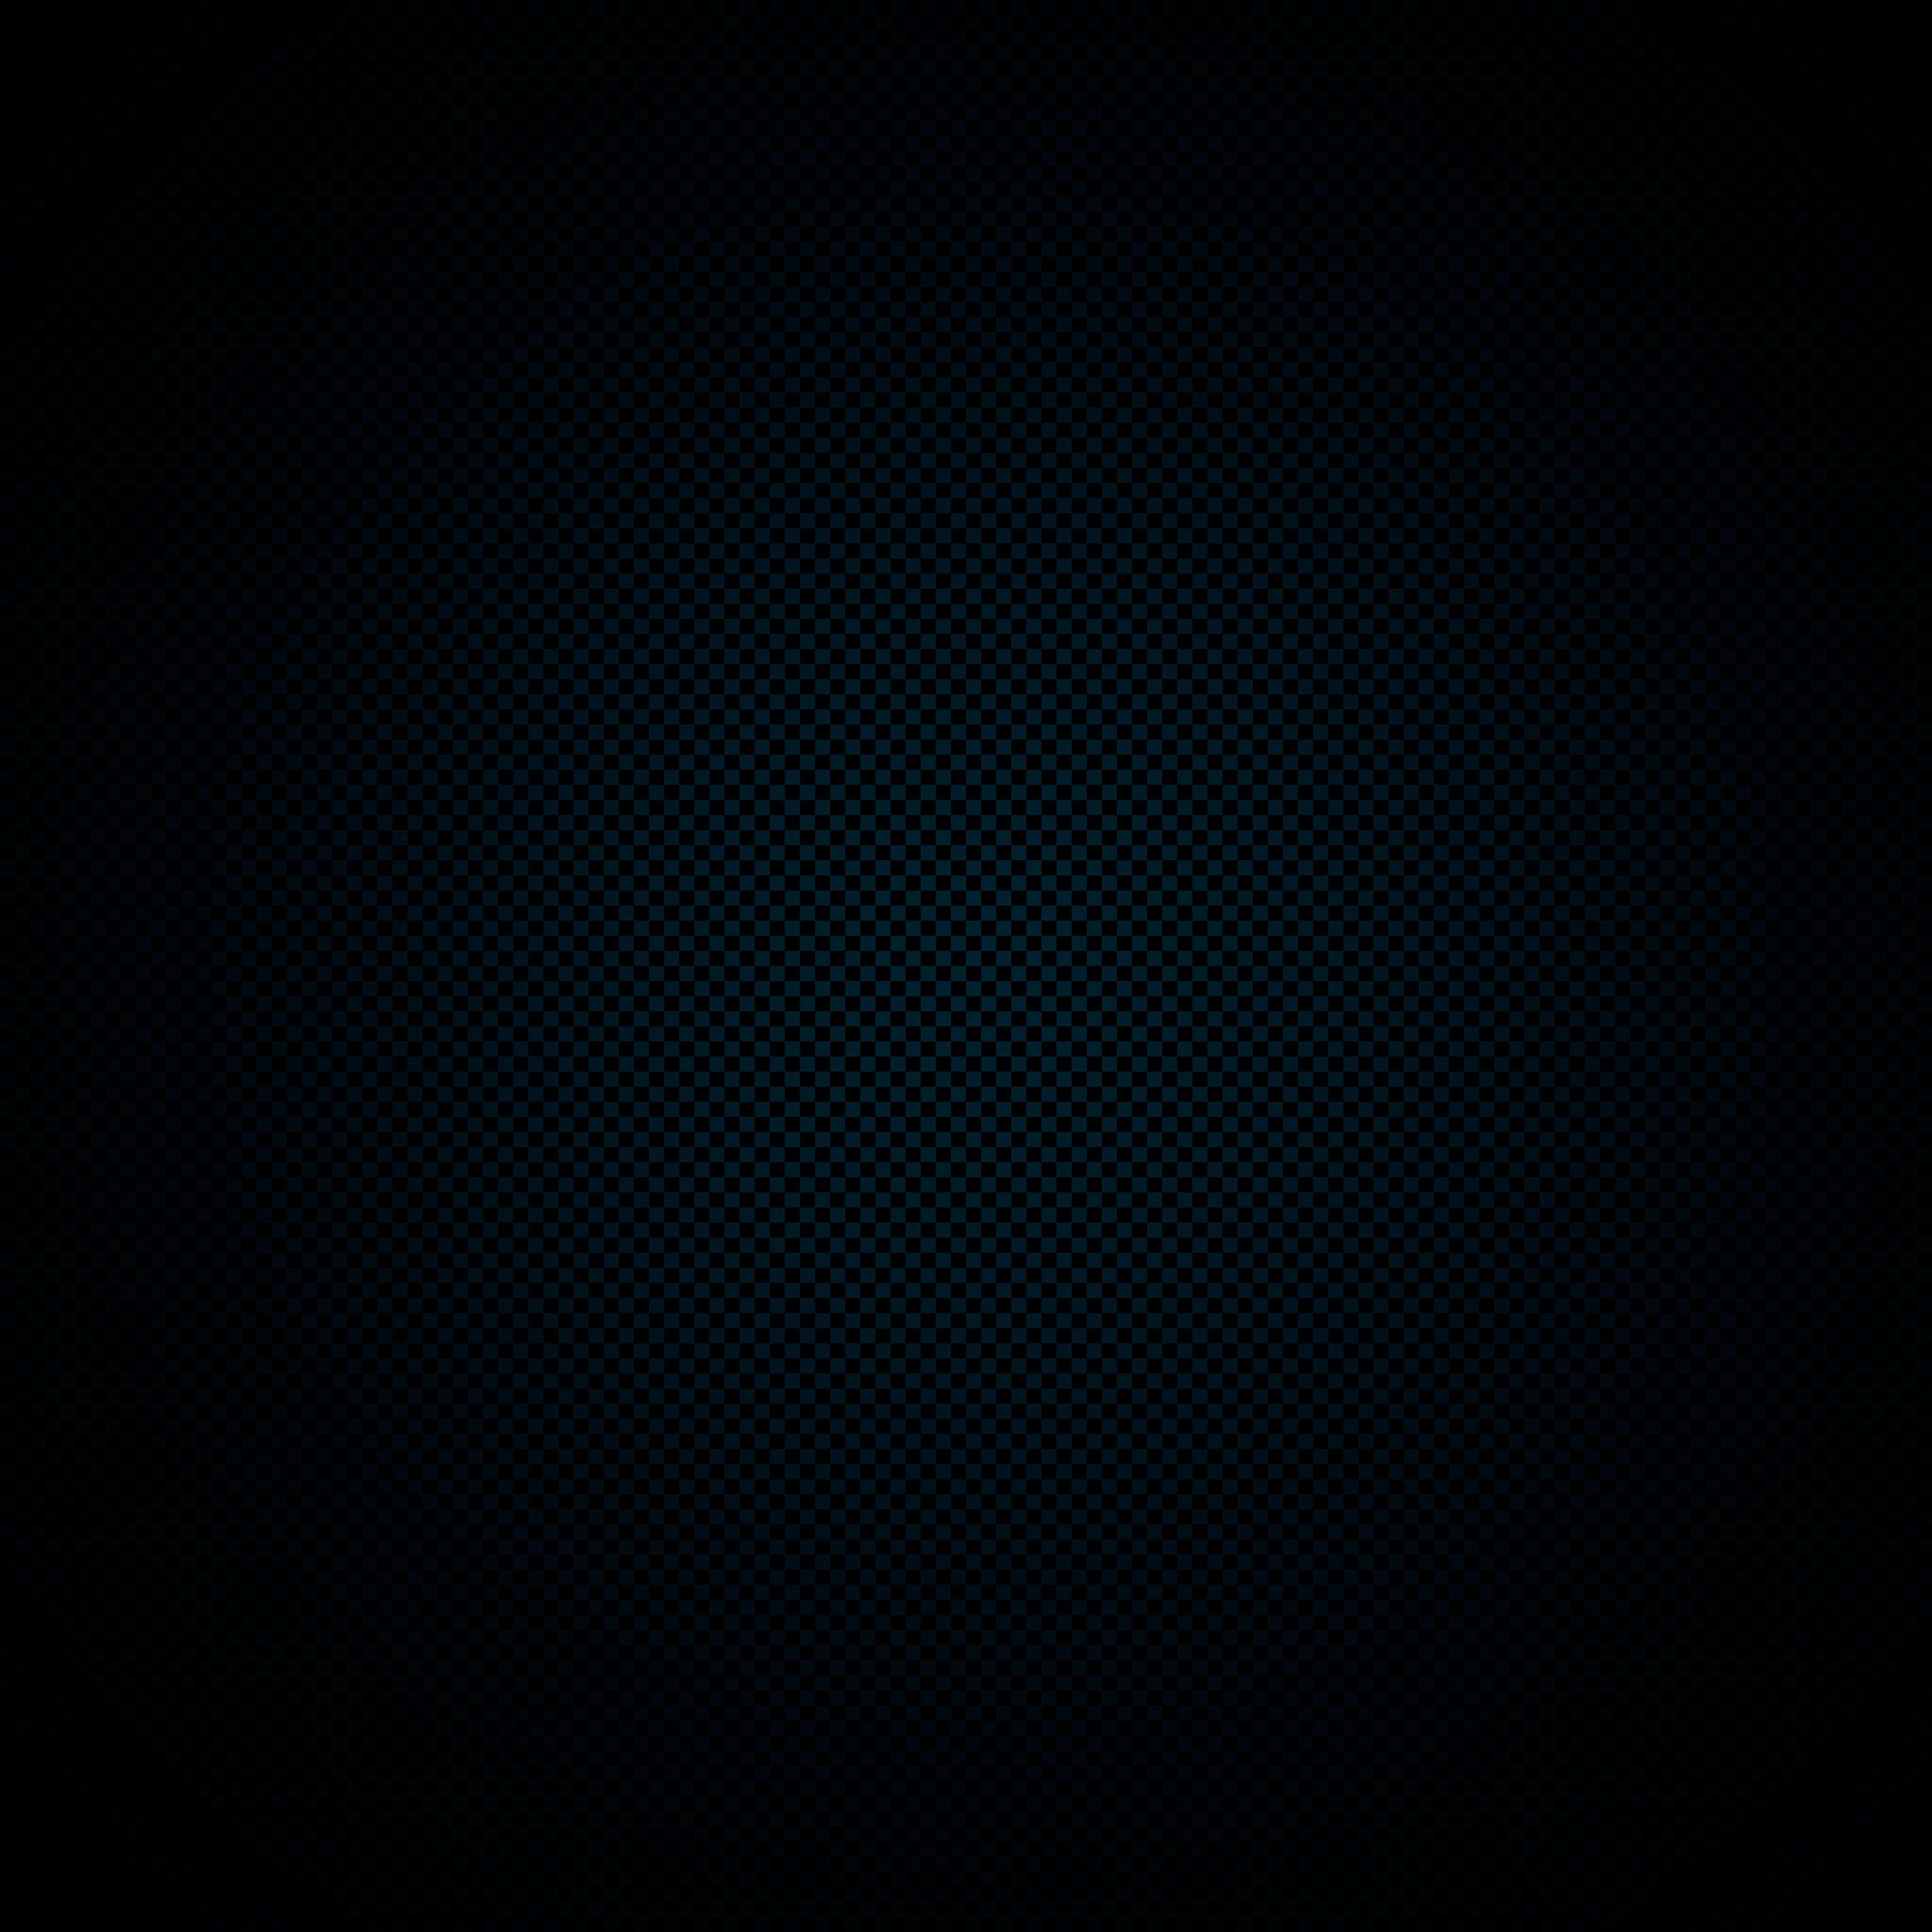 Pattern Logo Black | Wallpaper.sc IPad Part 98